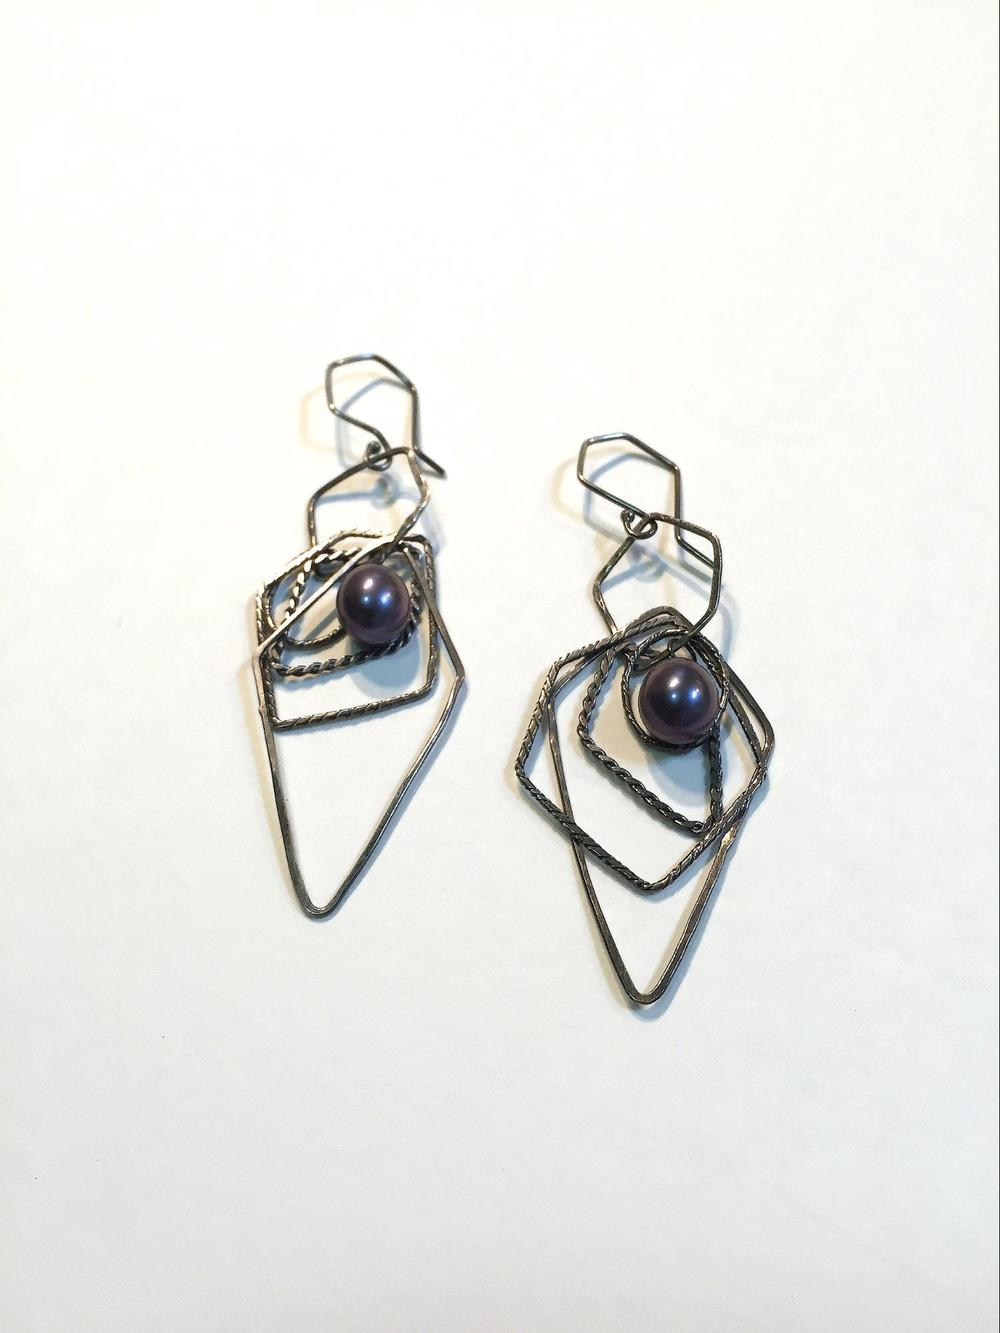 E3 Graff, Missy (MG3) single oxidized hoop with 4 oxidized hoops attached, dark blue freshwater pearl attached.jpg